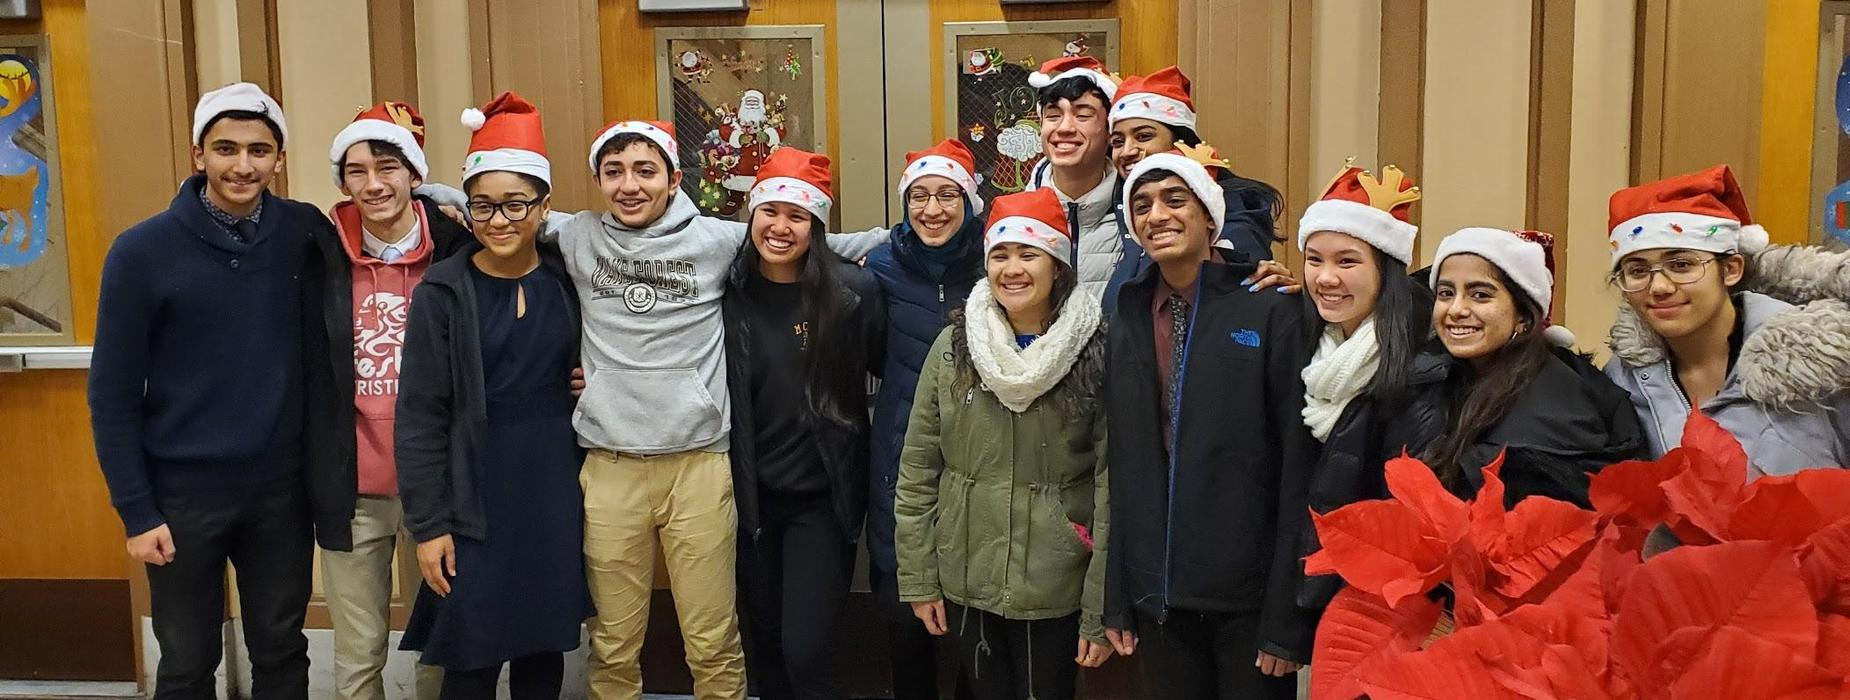 Students in Holiday Spirit